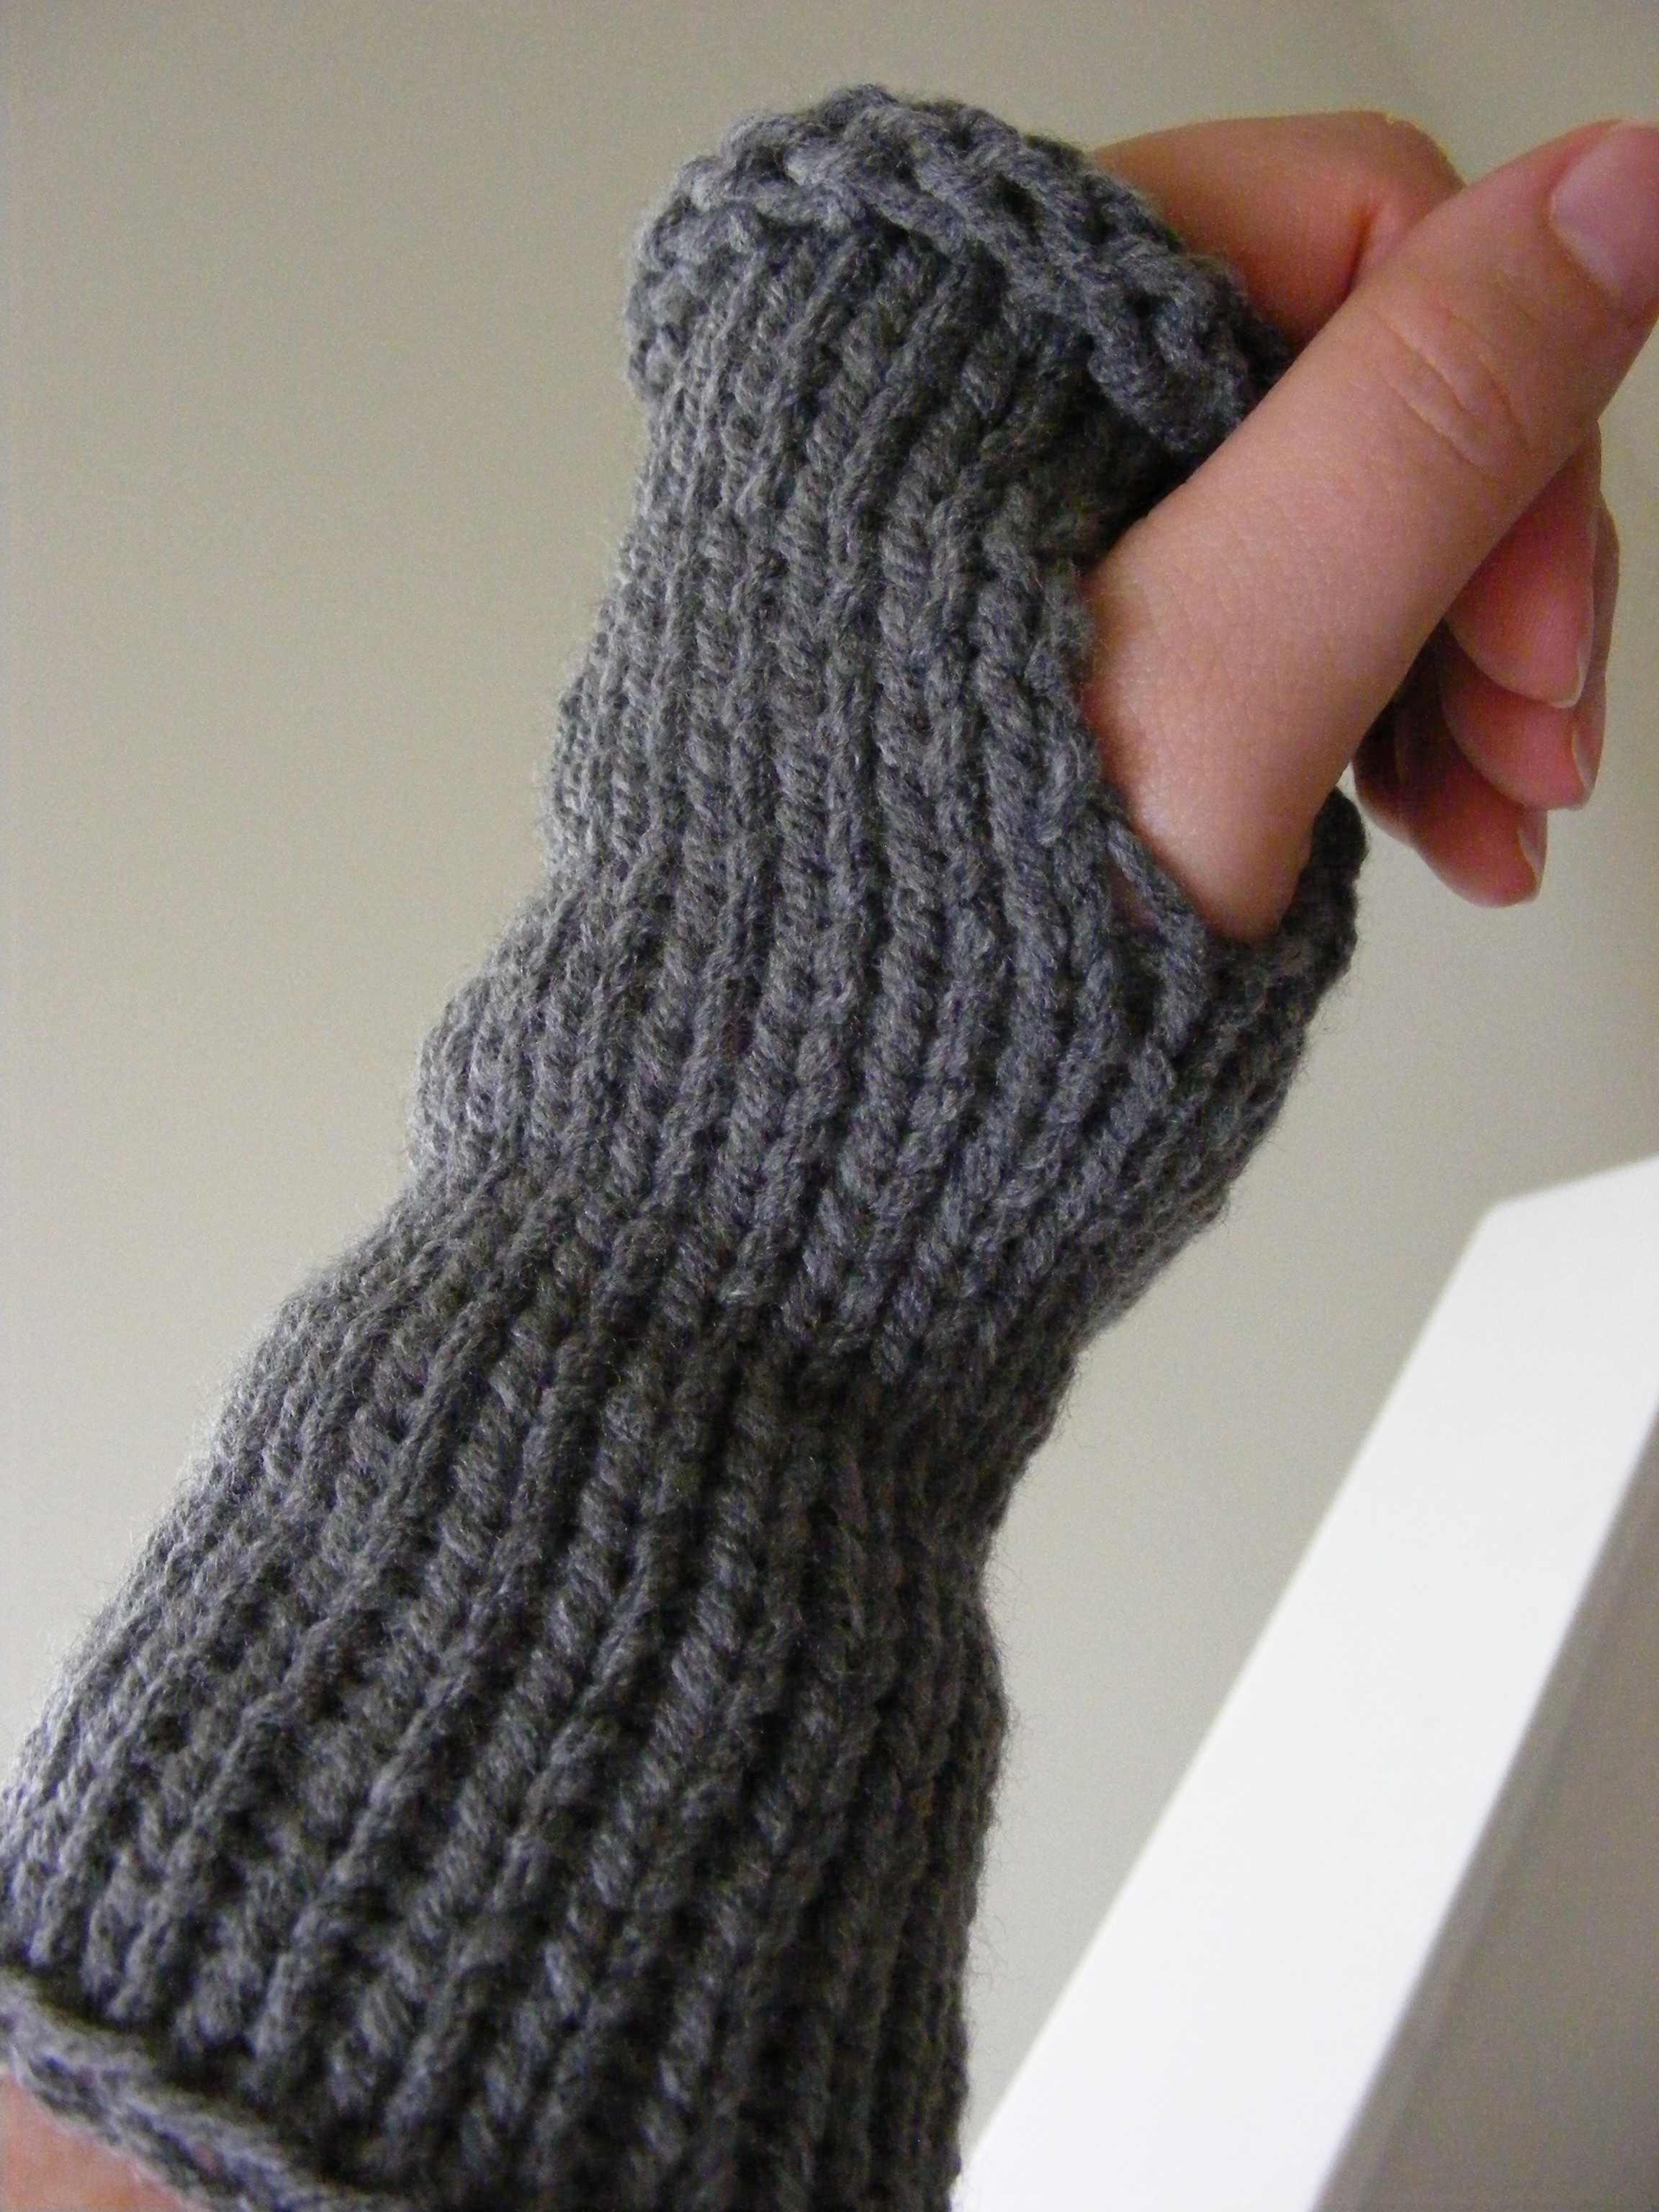 WRIST WARMER CROCHET PATTERN - Crochet   Learn How to Crochet